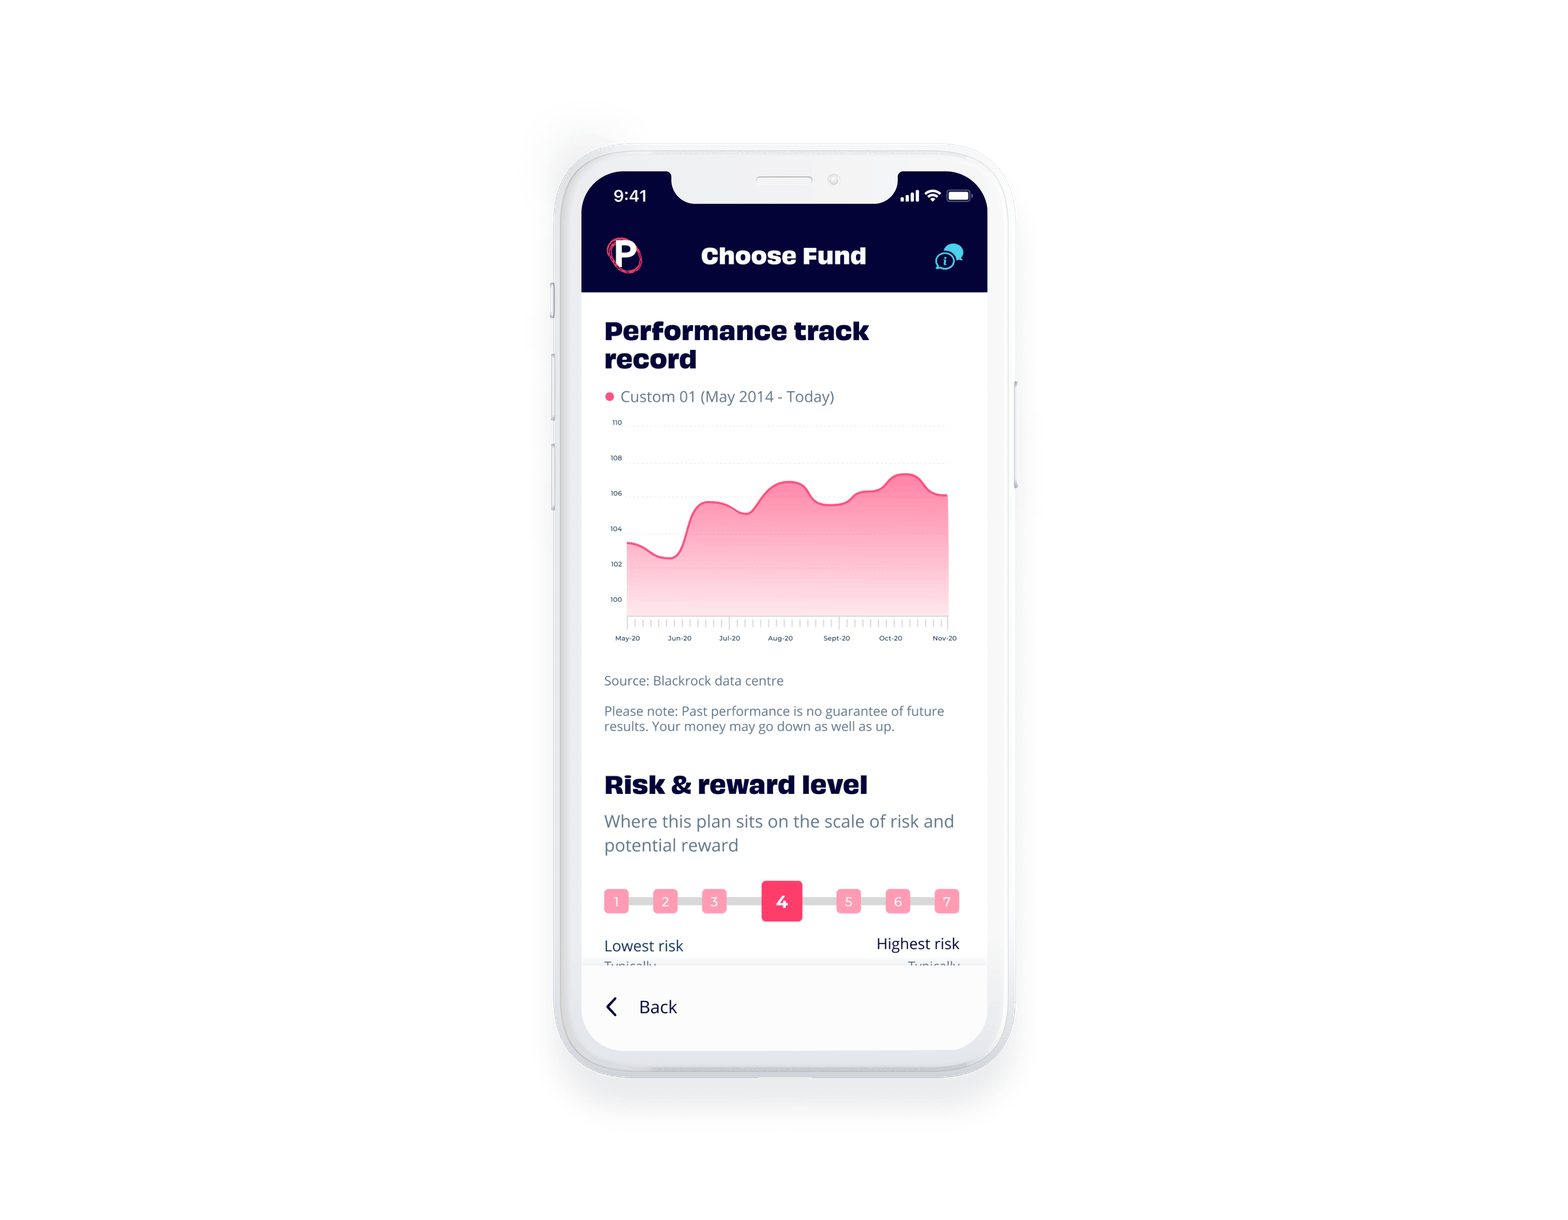 Penfold app showing pension fund performance track record screen